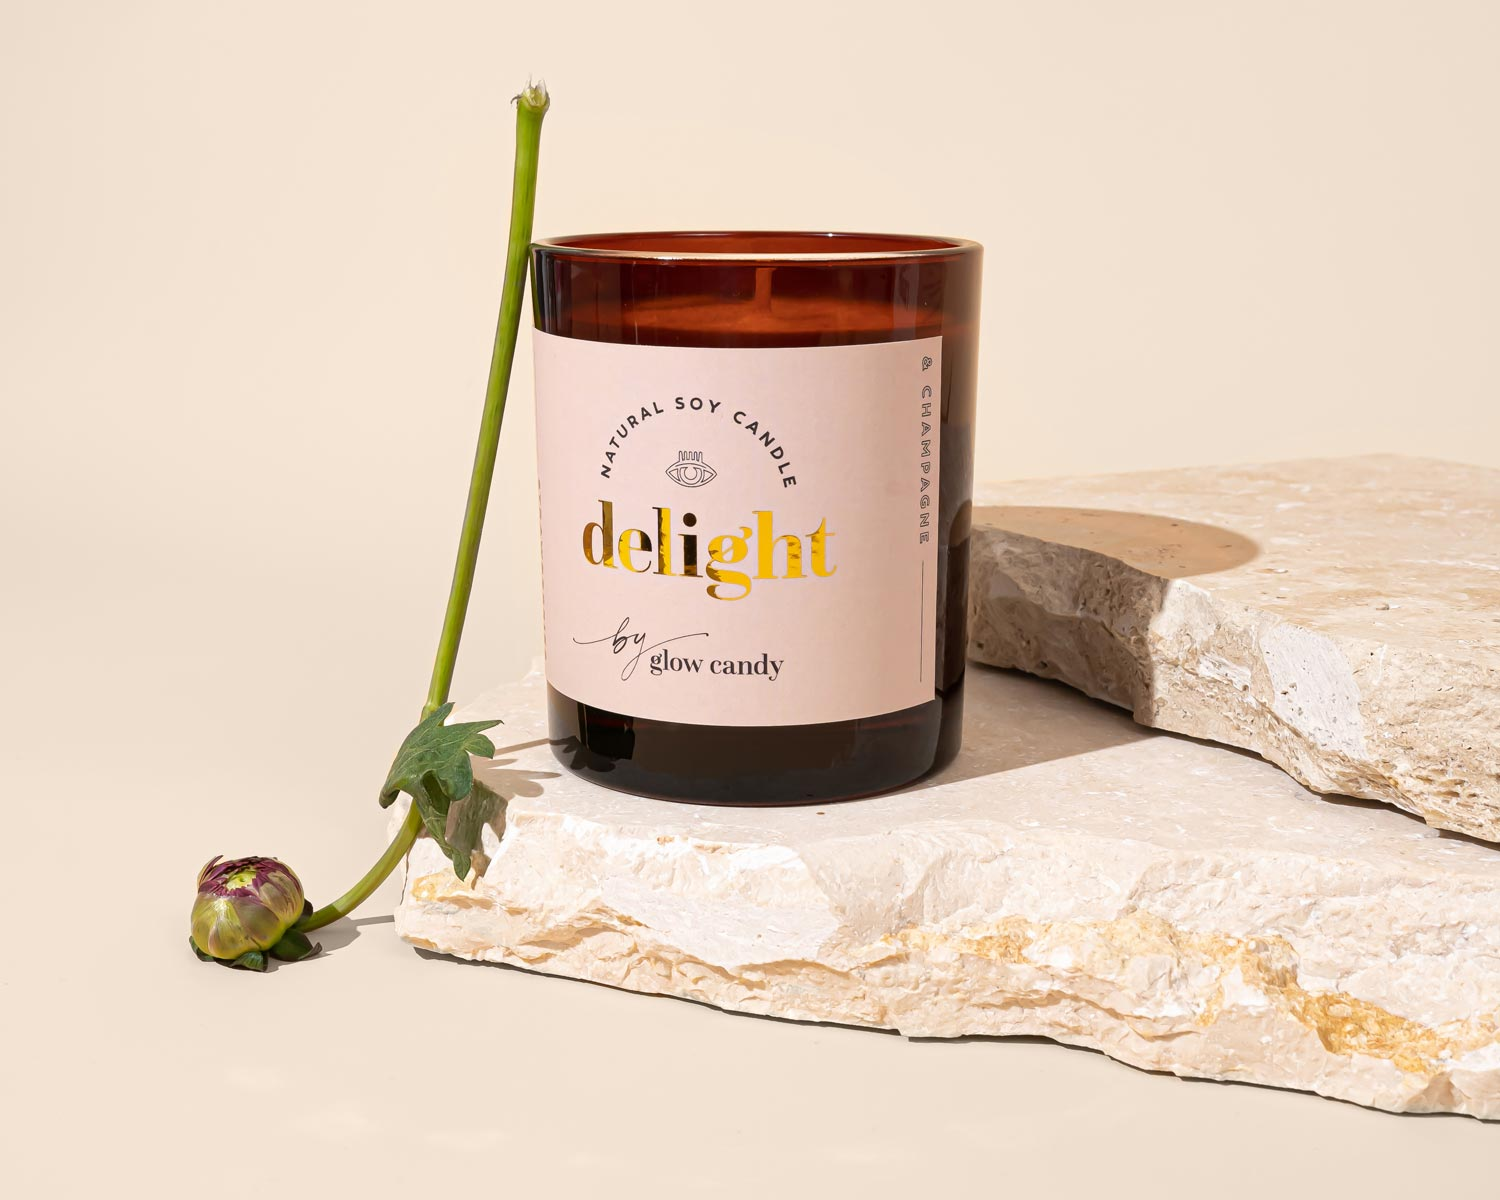 Glow Candy's 'Delight' candle, photographed on a piece of natural stone with a flower bud by its side.